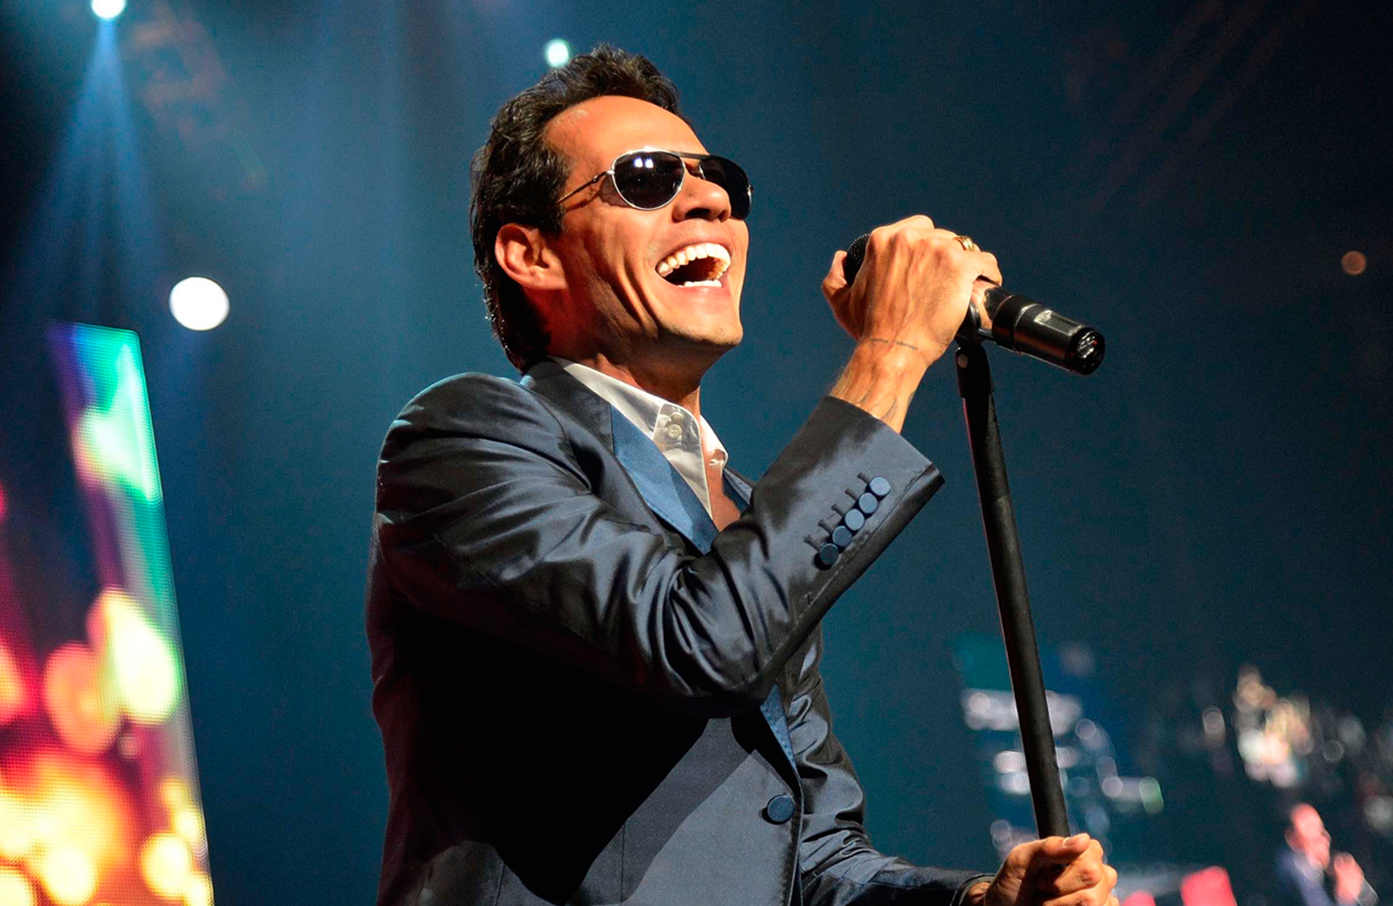 Marc Anthony at the Prudential Center - February 11